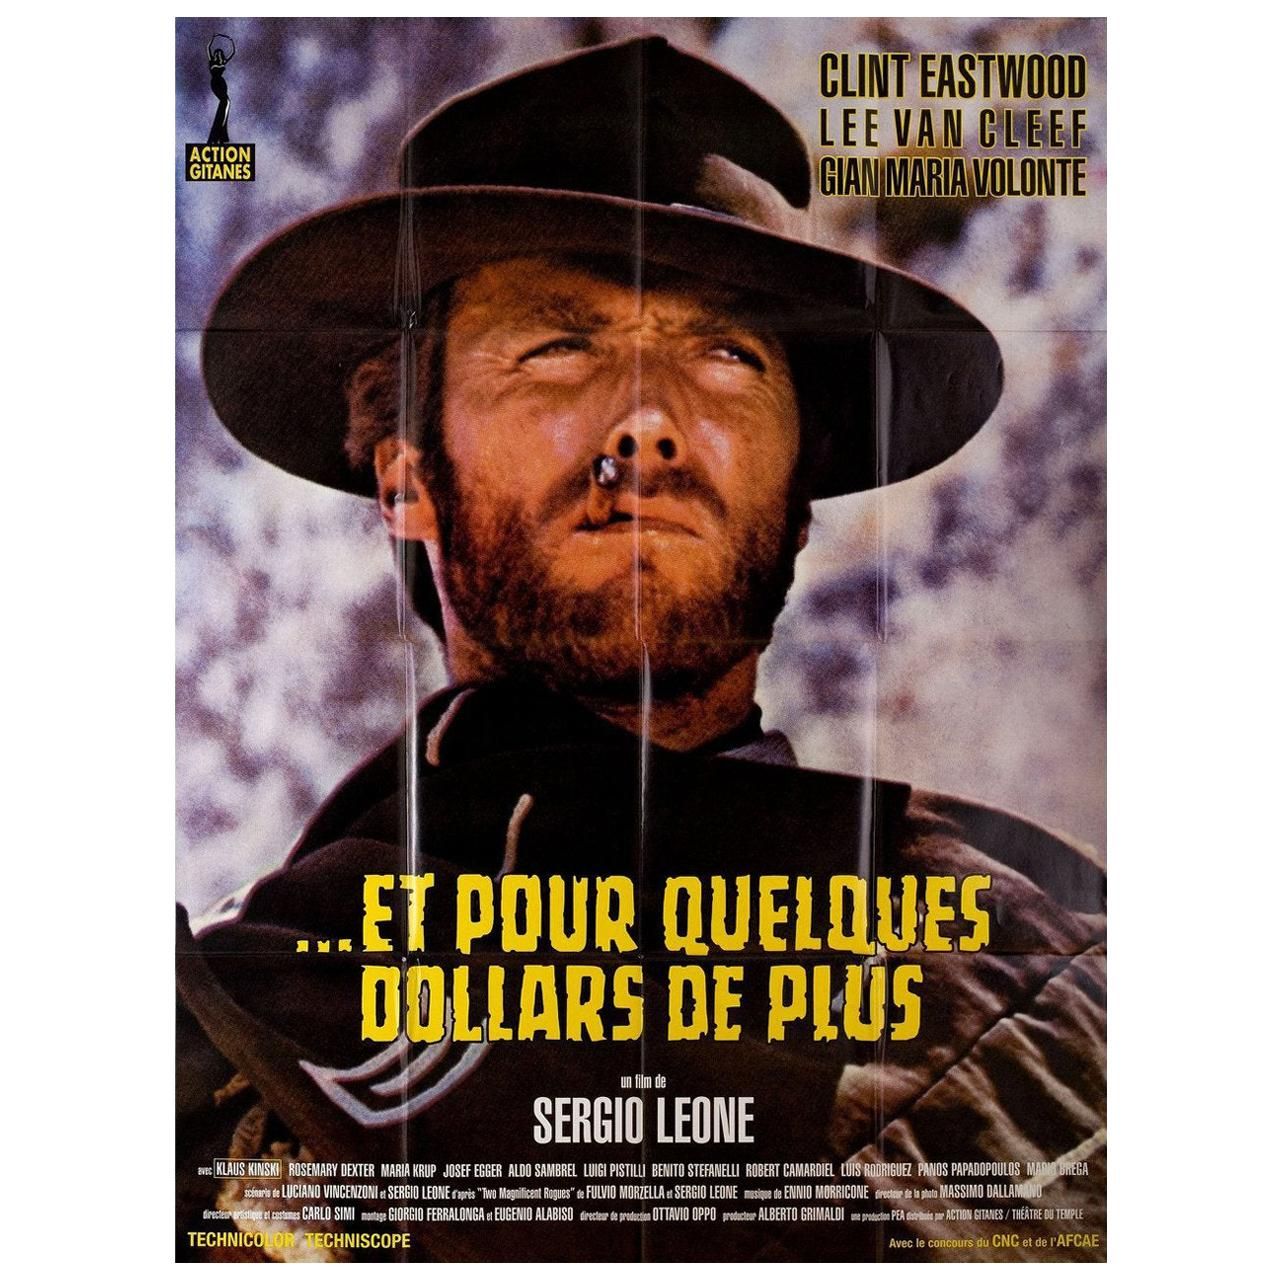 For a Few Dollars More R2000s French Grande Film Poster